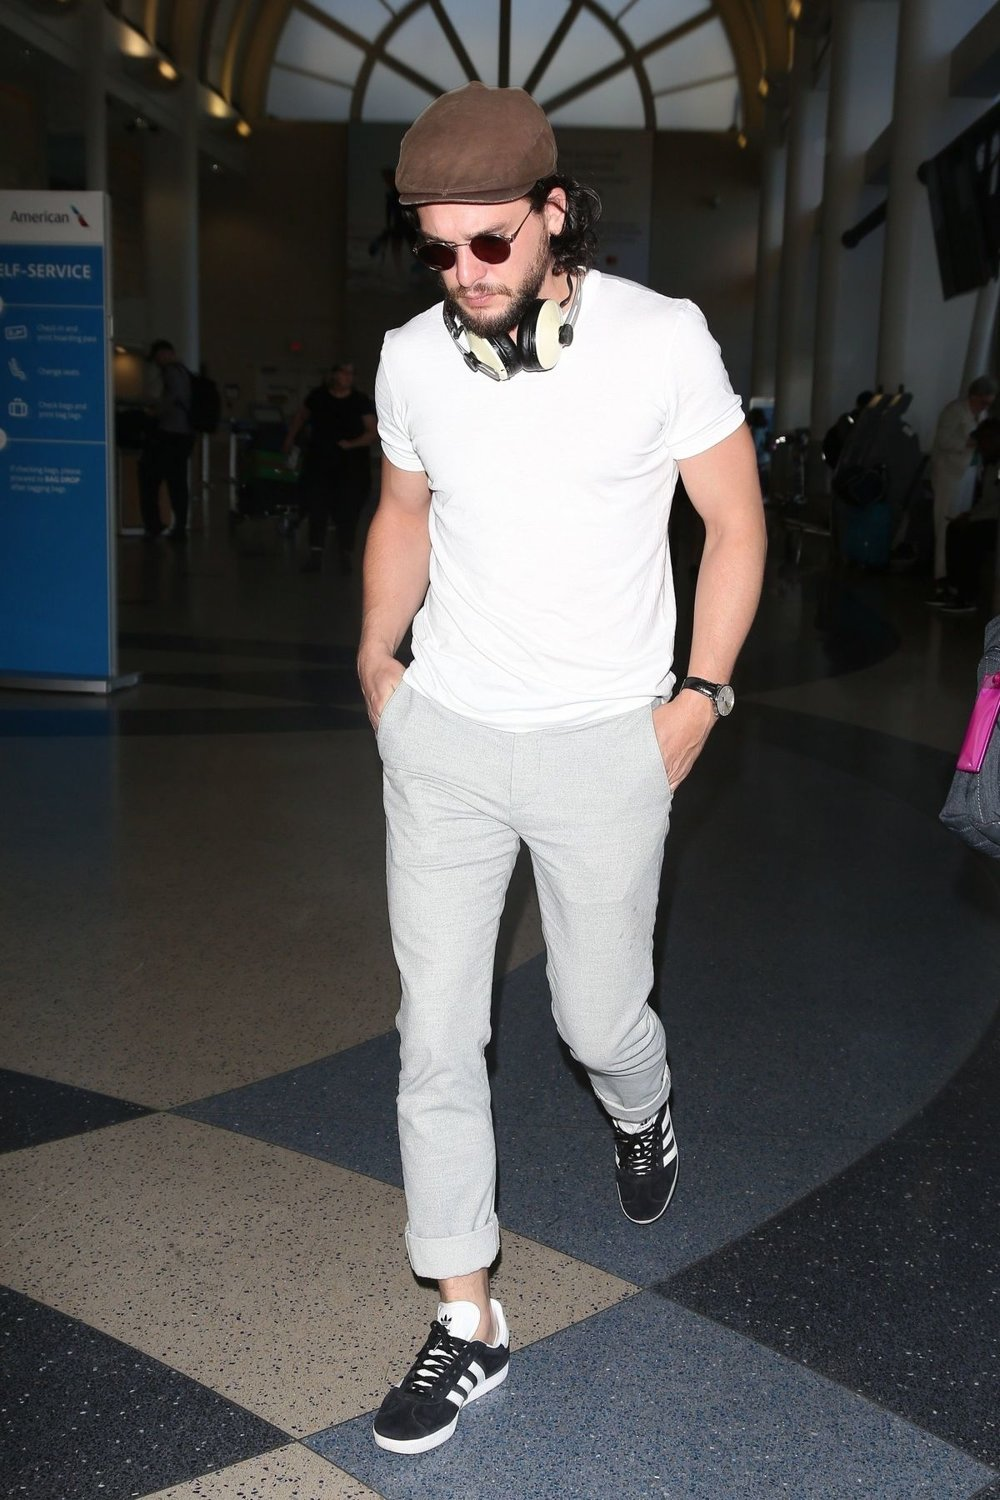 kit-harington-arriving-to-jfk-airport-in-new-york-city-3.jpg